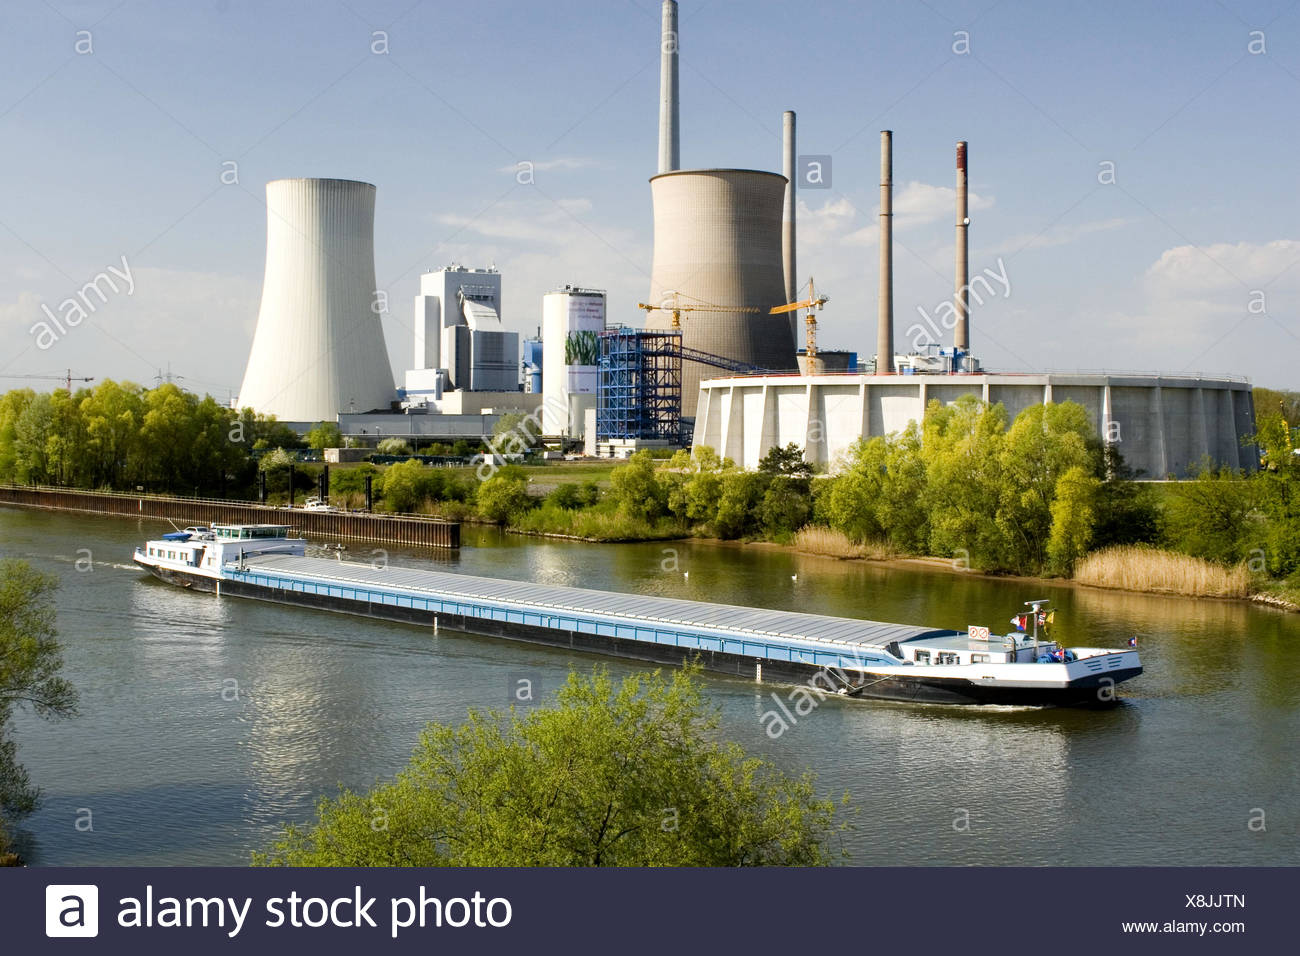 view over the Main with towboat at the Grosskrotzenburg Power Station, Germany, Hesse, Hainburg - Stock Image